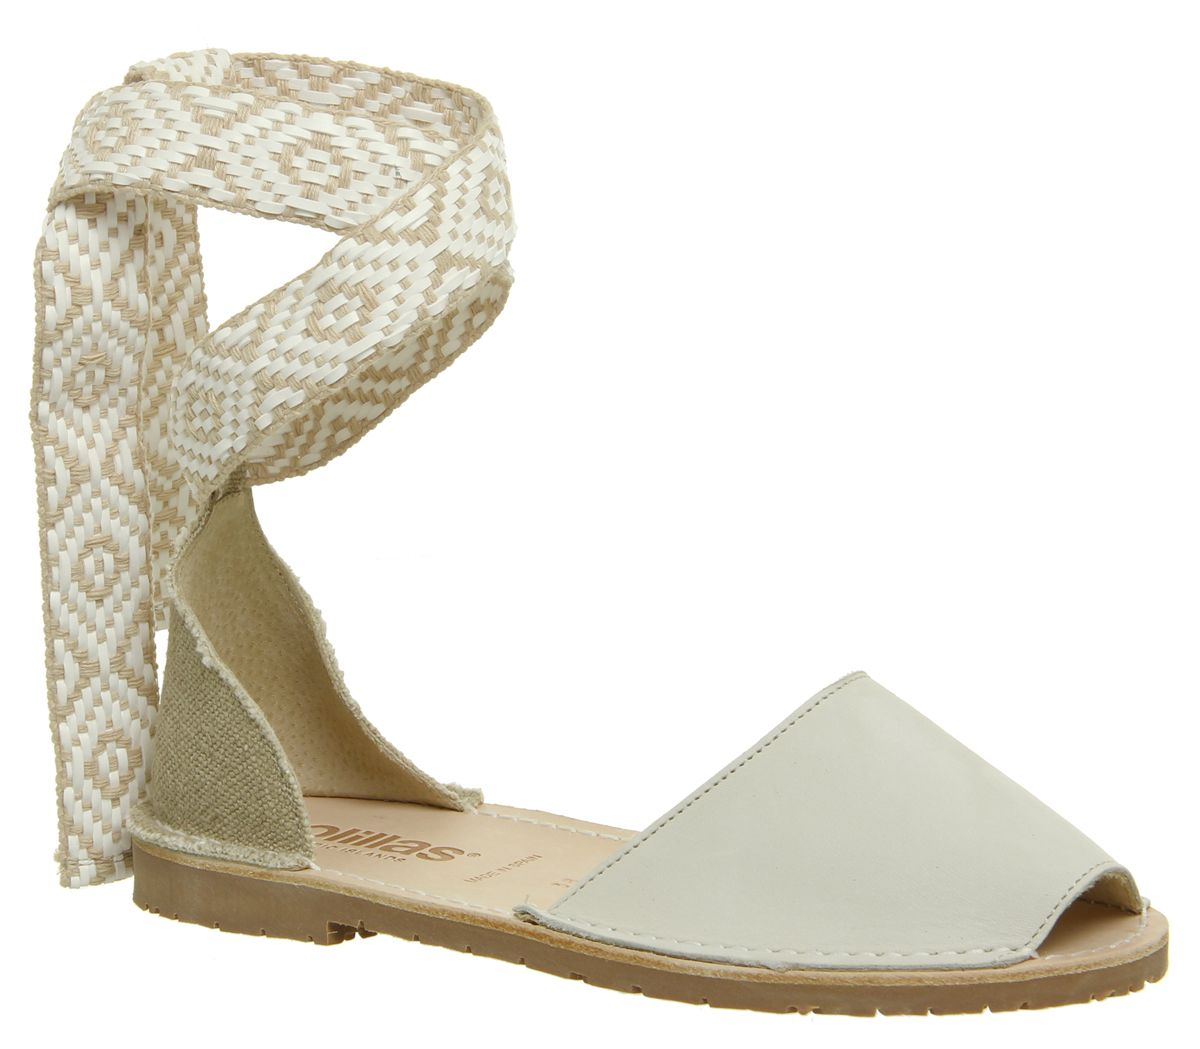 Solillas Solillas Wrap Tie Shoes, Nude